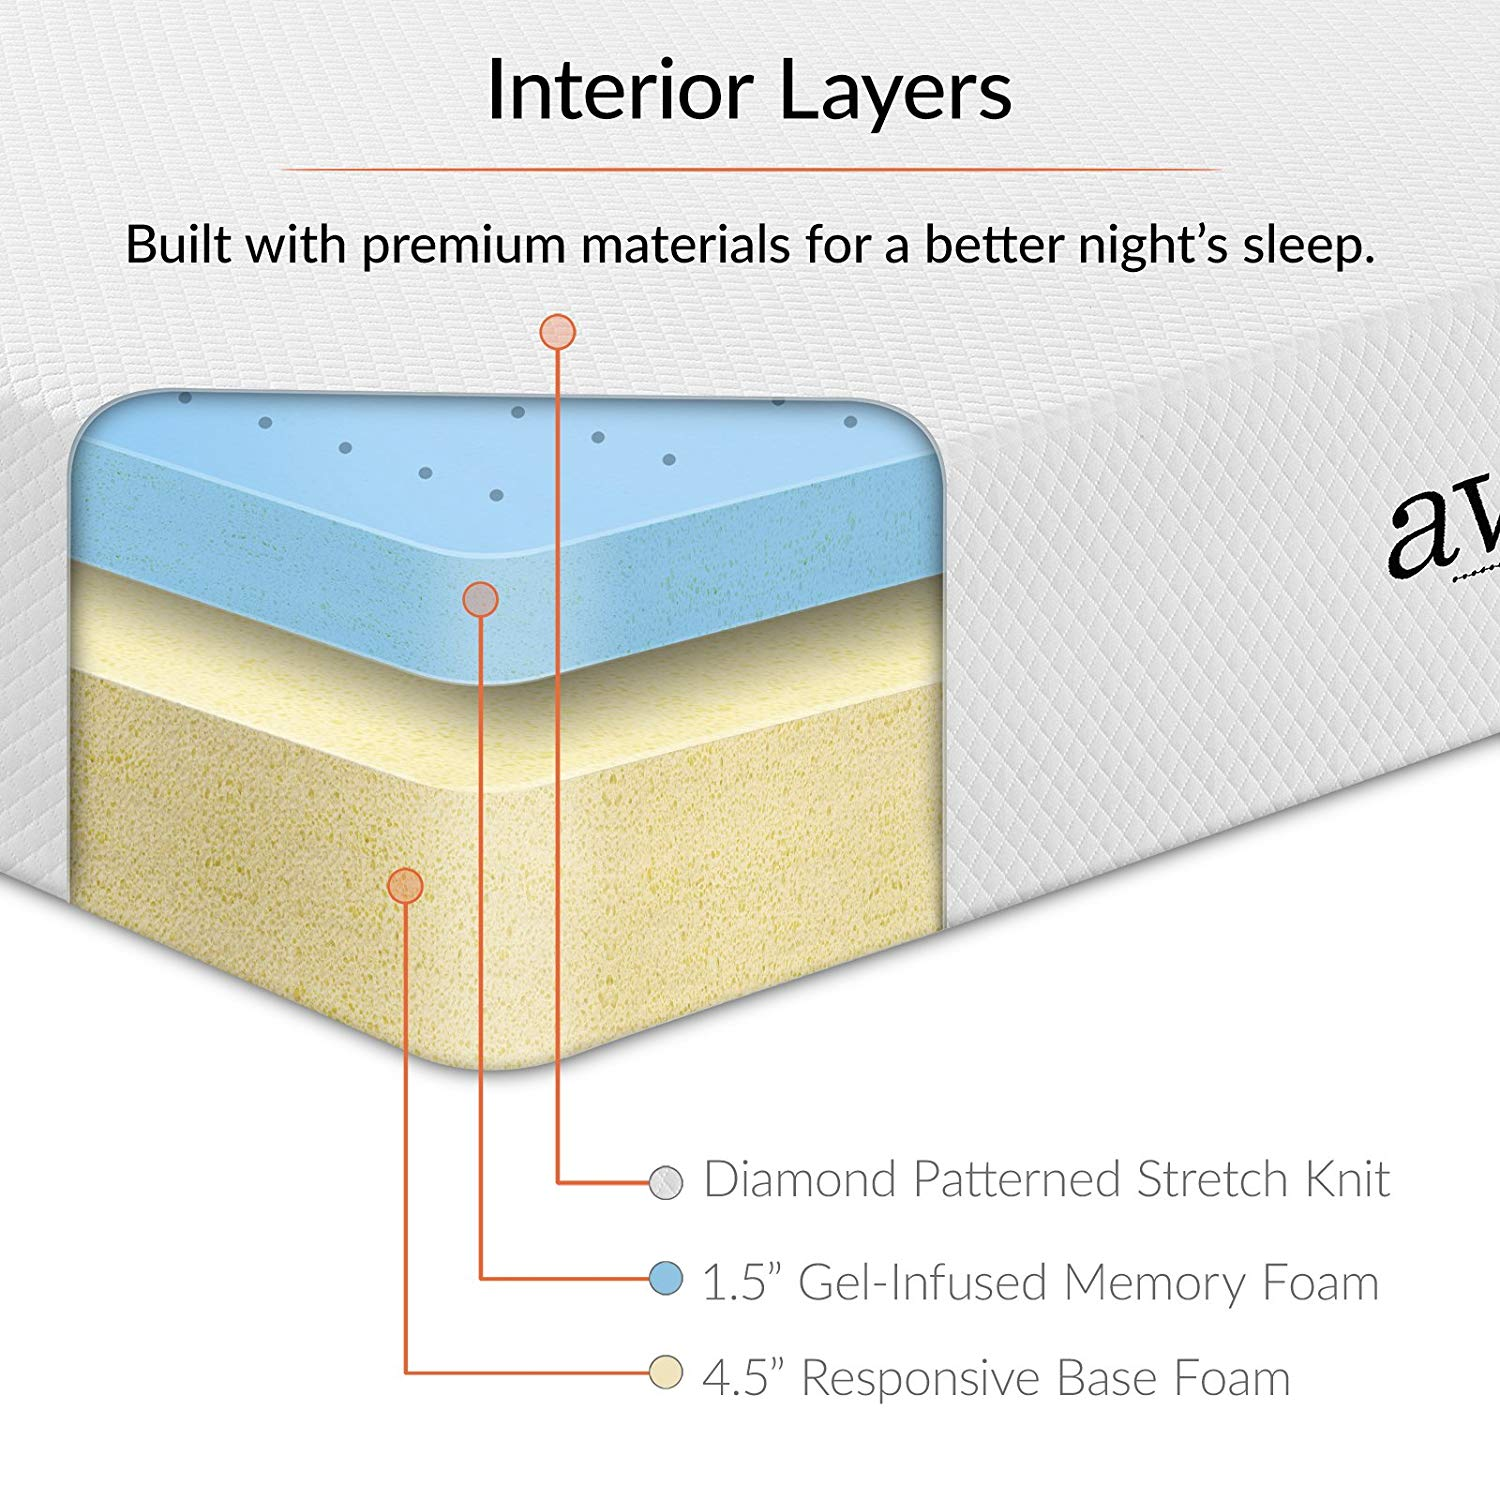 Layer Modway gel-infused memory foam mattress